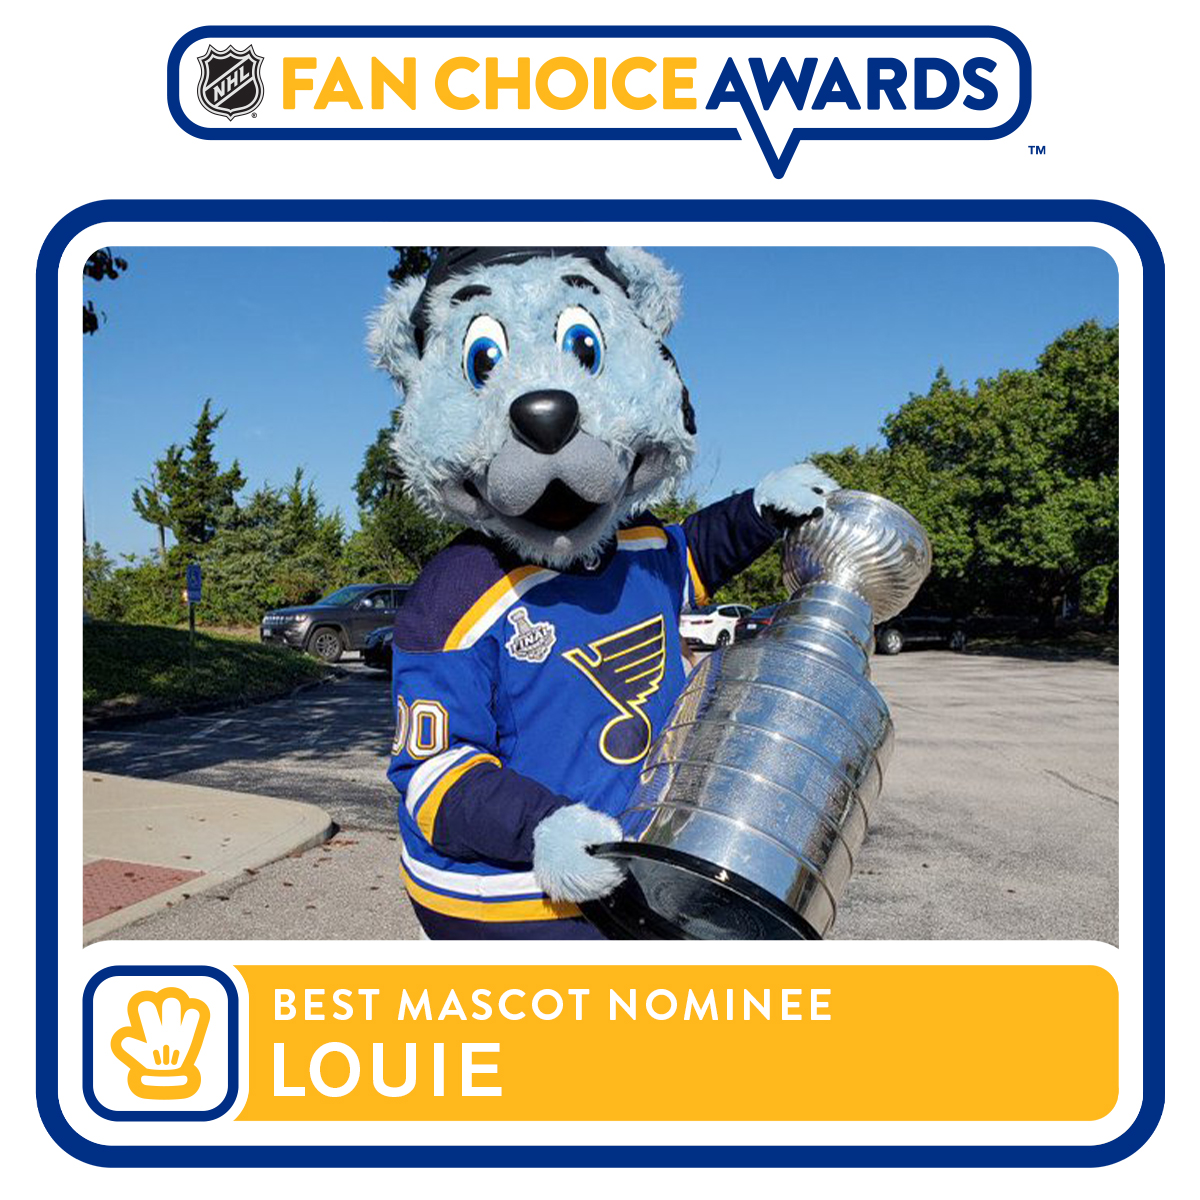 You know who to vote for. bit.ly/2xWxavz #stlblues #NHLFanChoice